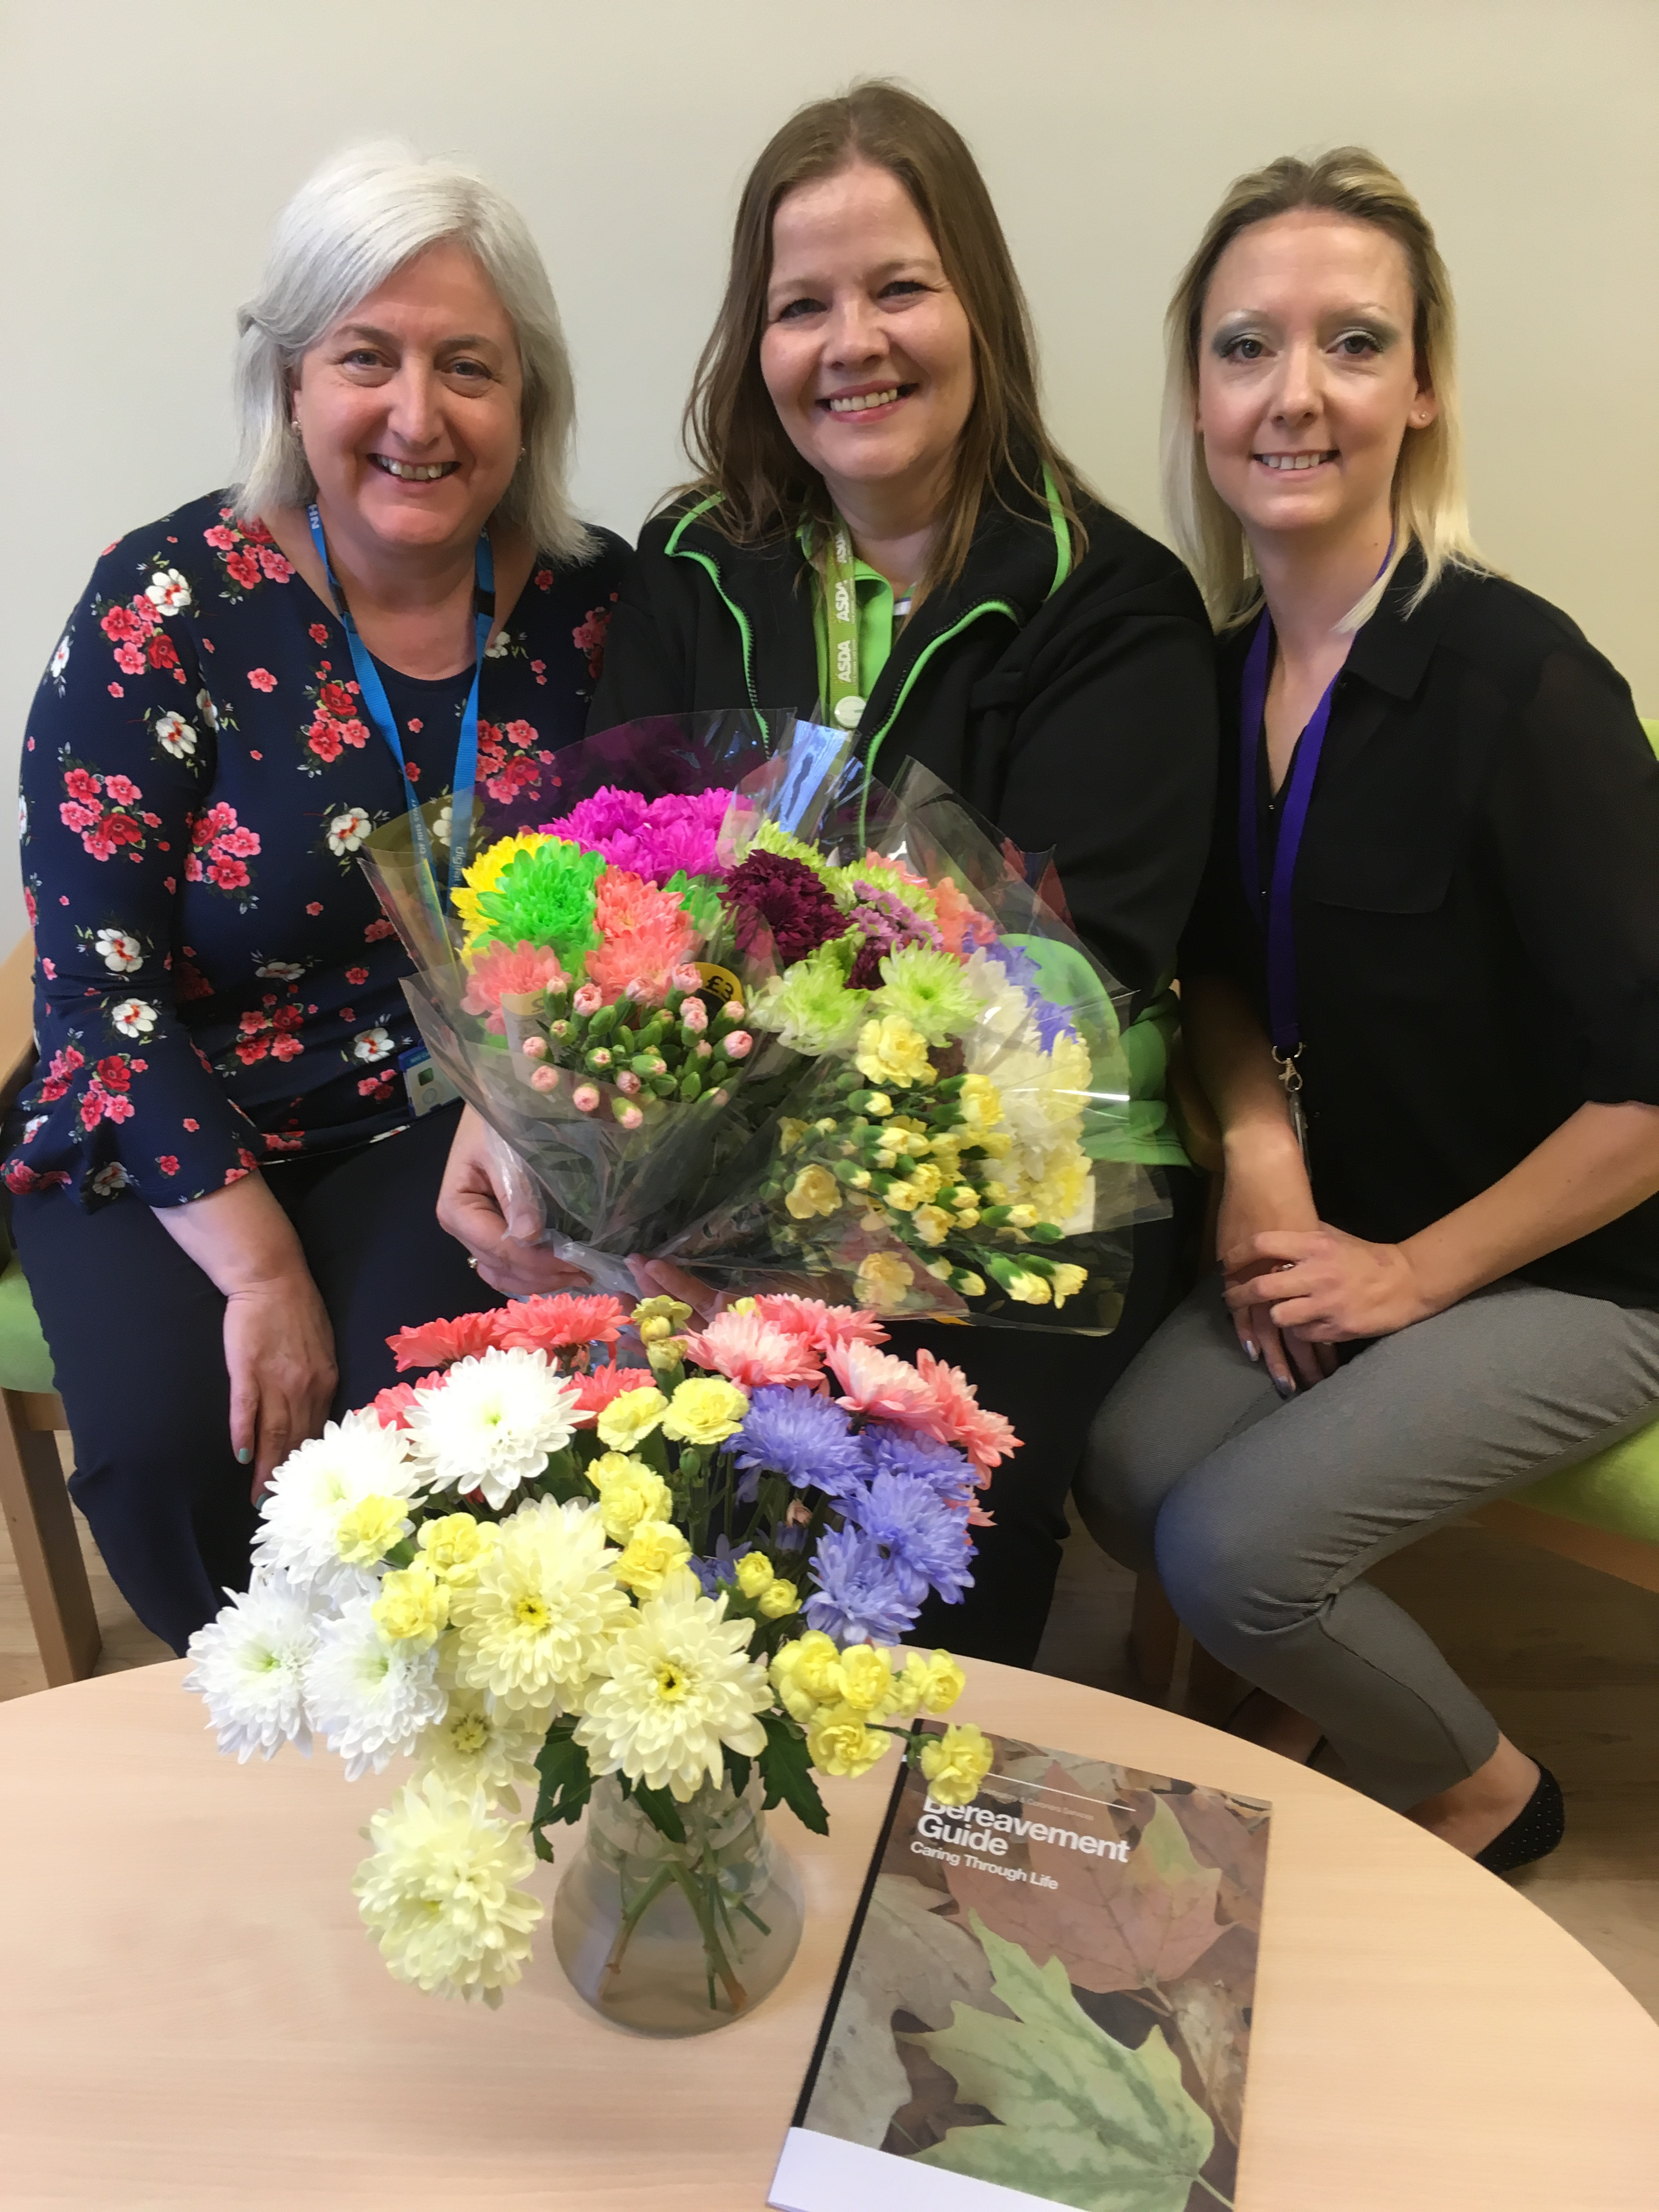 Asda flower donation to bereavement centre | United Lincolnshire ...